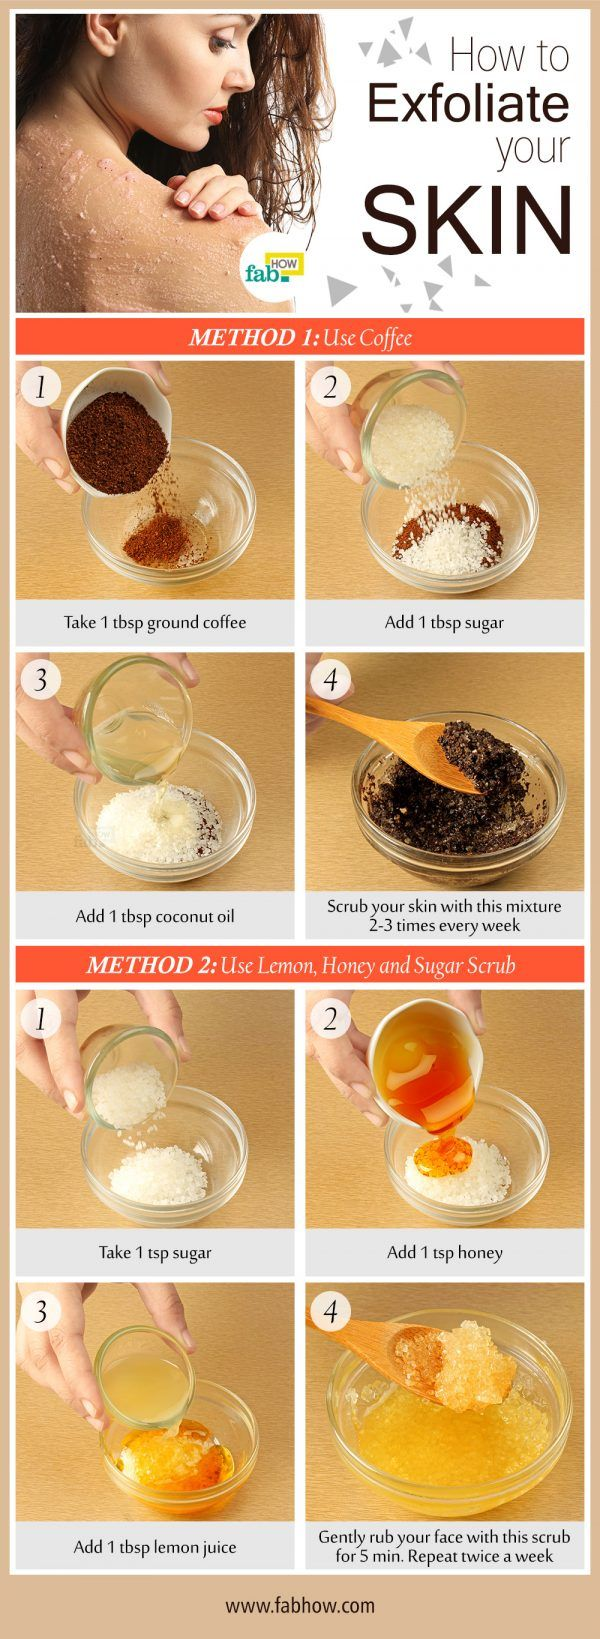 How To Exfoliate Your Skin (remove Dead Skin Cells) To Get Radiant And  Healthy